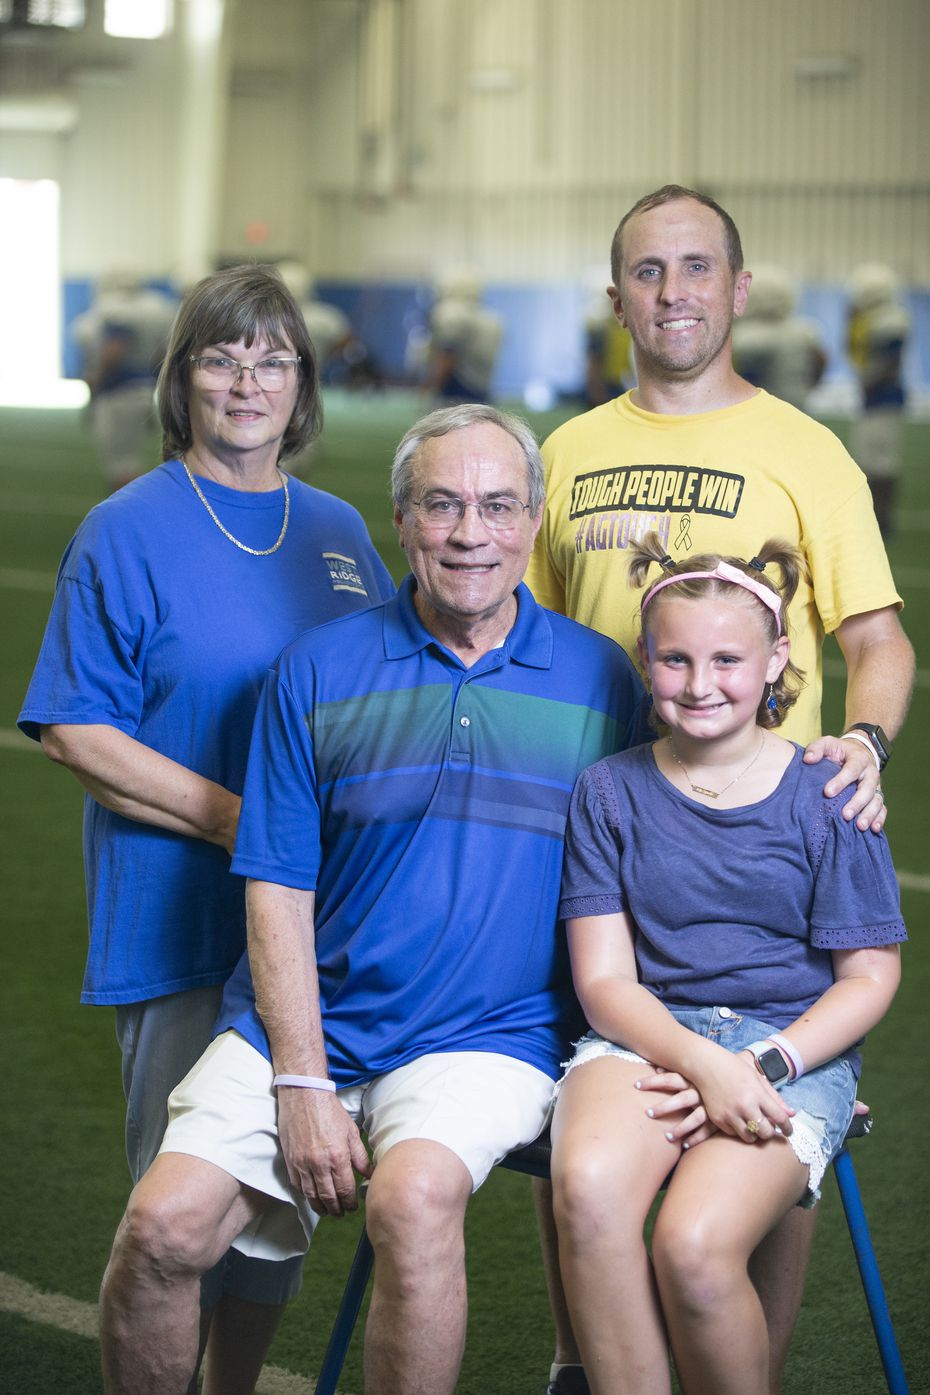 Former Grand Prairie ISD executive  director of athletics Gary Bartel, second from left, poses for a photo with his wife Pat, left, son, Eric and grand daughter Annabelle Grace, 11, at Grand Prairie High School's indoor practice facility, Wednesday, August 11, 2021. Annabelle Grace had bone cancer, now in remission, and has served as an inspiration for Gary who was on a ventilator for 103 days battling COVID-19. (Brandon Wade/Special Contributor)